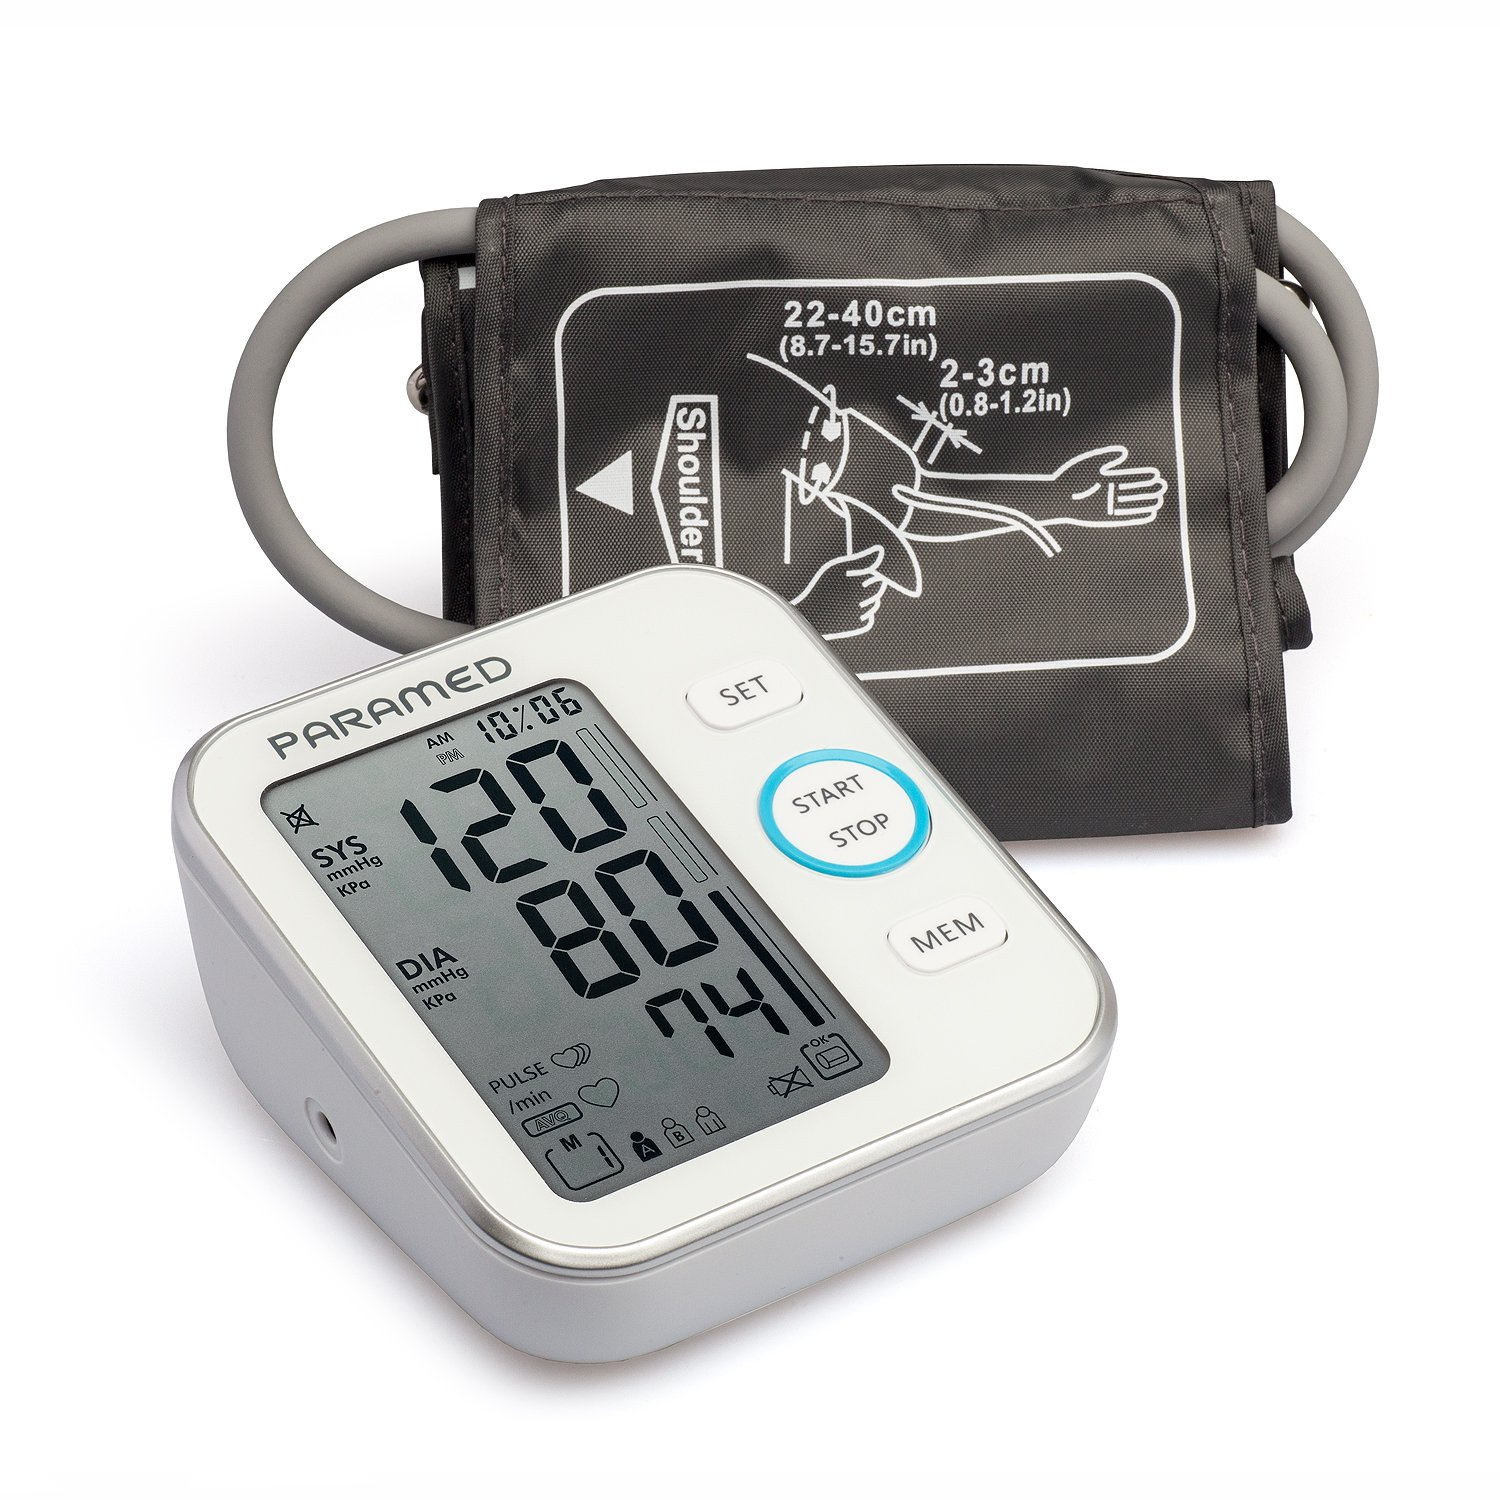 Blood Pressure Monitor by Paramed: Accurate Automatic Upper Arm Bp Machine & Pulse Rate Monitoring